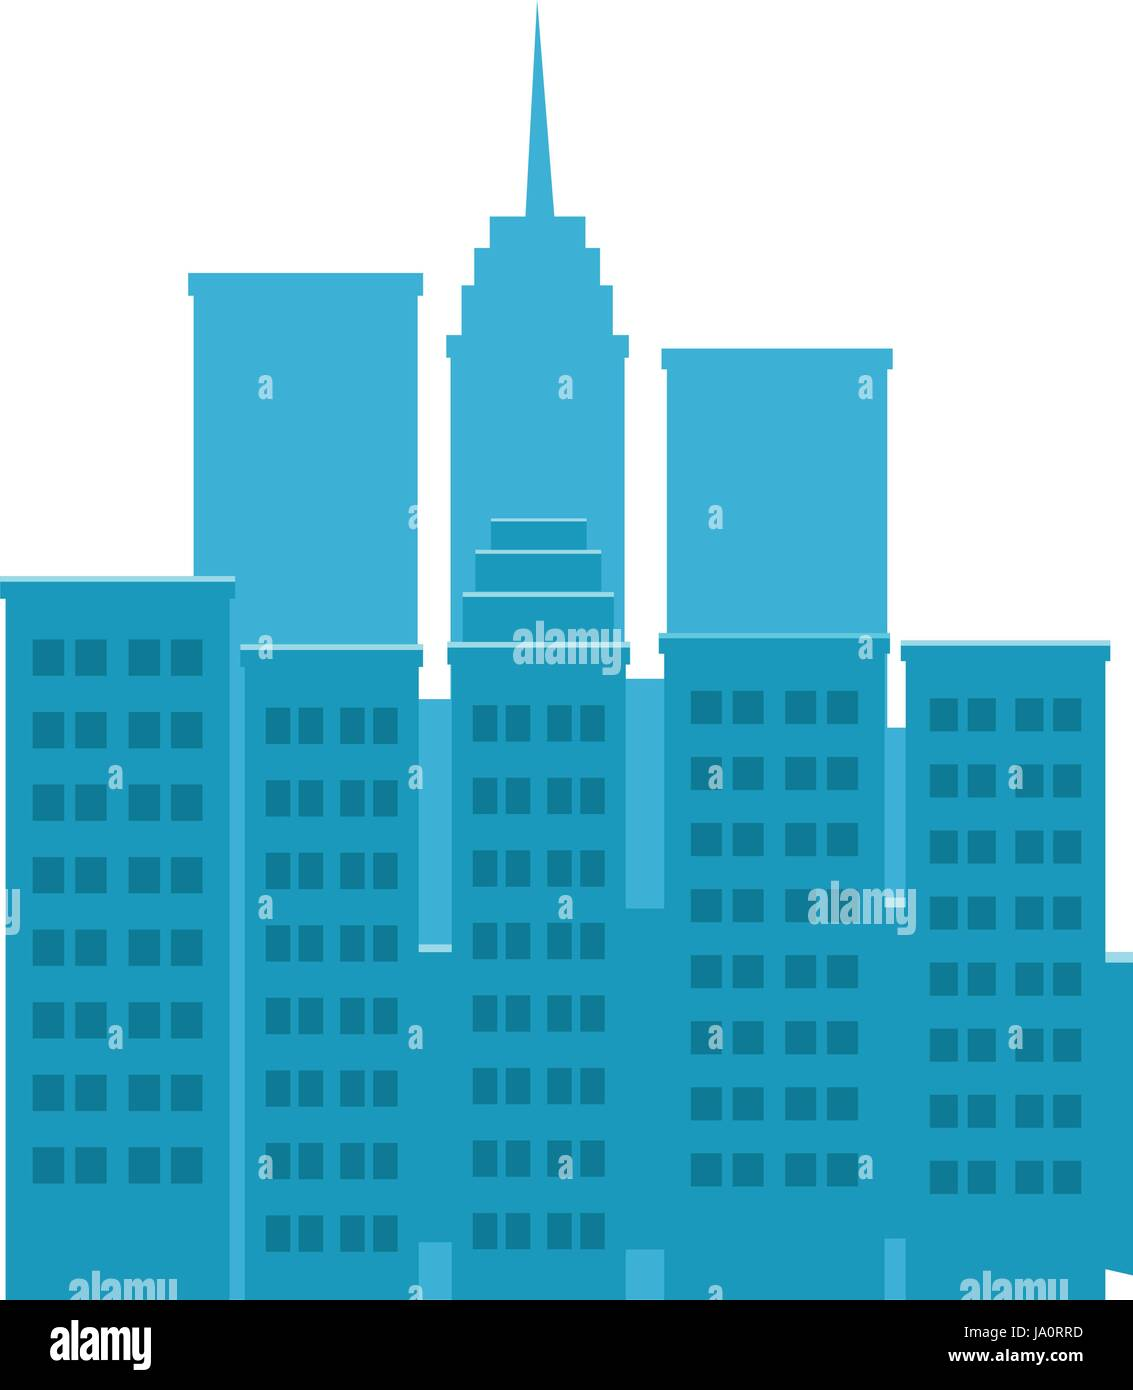 Outline athens skyline with blue buildings and copy space stock vector - Skyscrapers Buildings Towers City Business Architecture Apartment And Office Building Urban Landscape